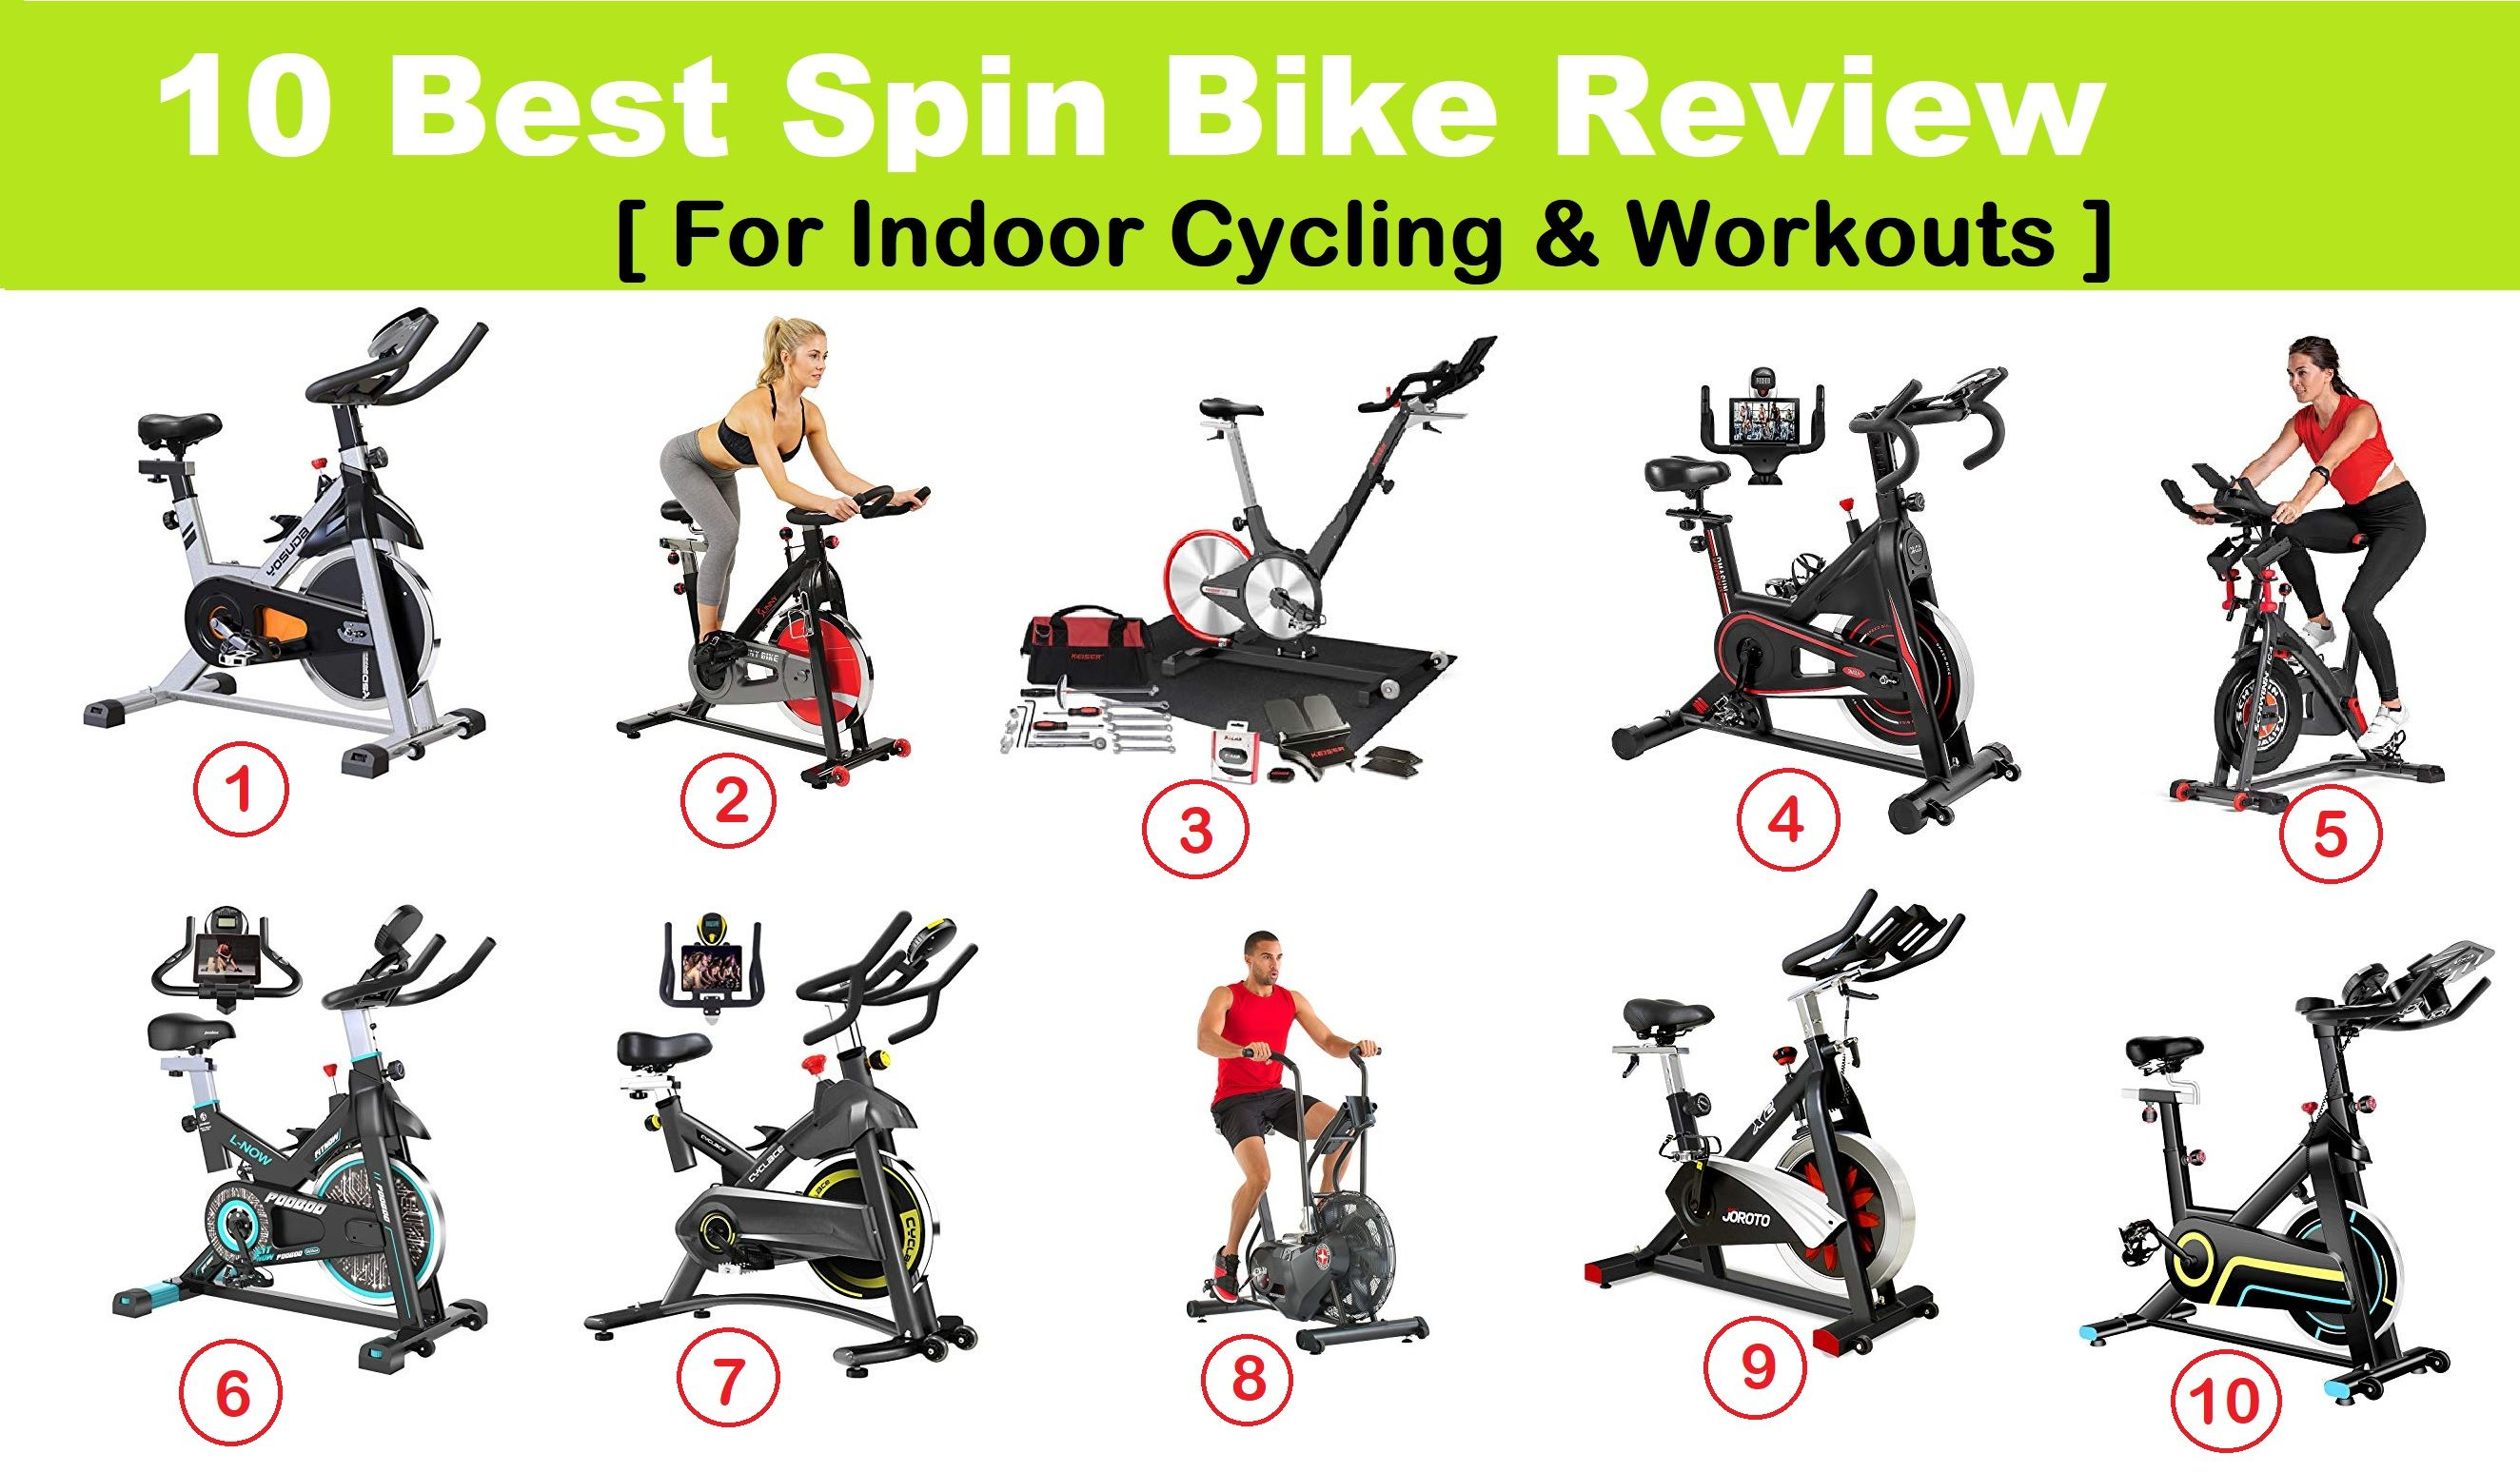 10 Best Spin Bike Review 2021 for Indoor Cycling & Workouts in Any Budget ( under $500, $1000, $2000) : YOSUDA vs Sunny Health vs Keiser M3 vs DMASUN vs pooboo vs Cyclace vs Schwinn vs JOROTO